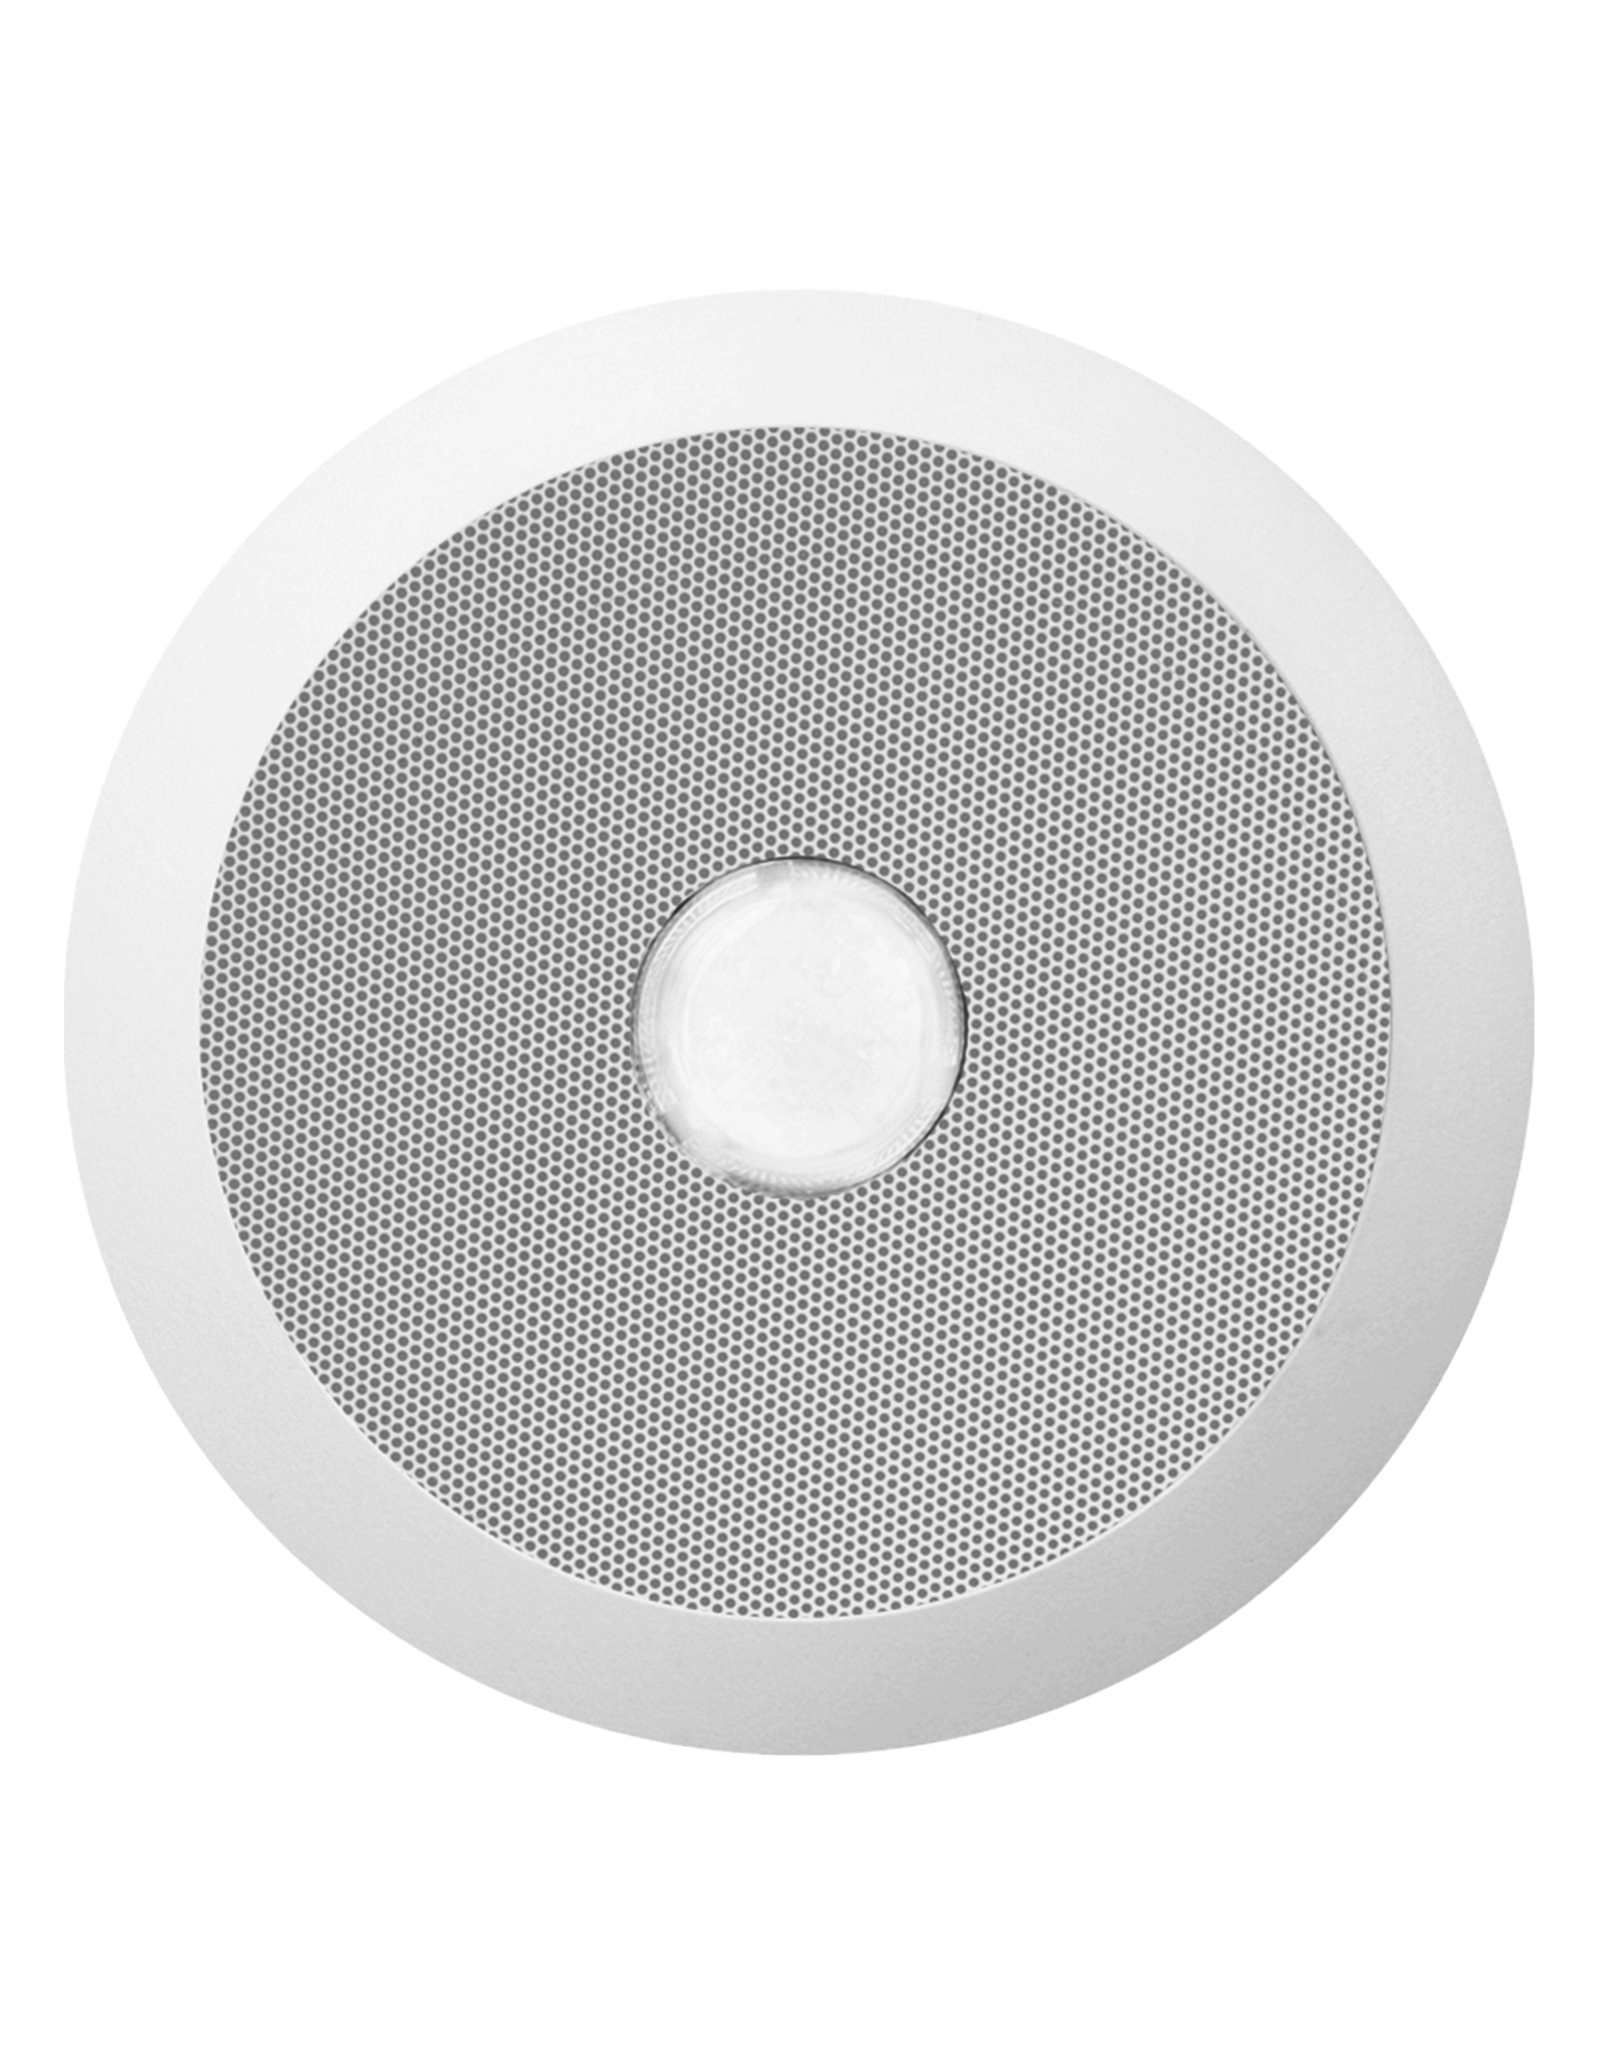 Audac Evacuation quick fit ceiling speaker, 6w, 100v + red led White